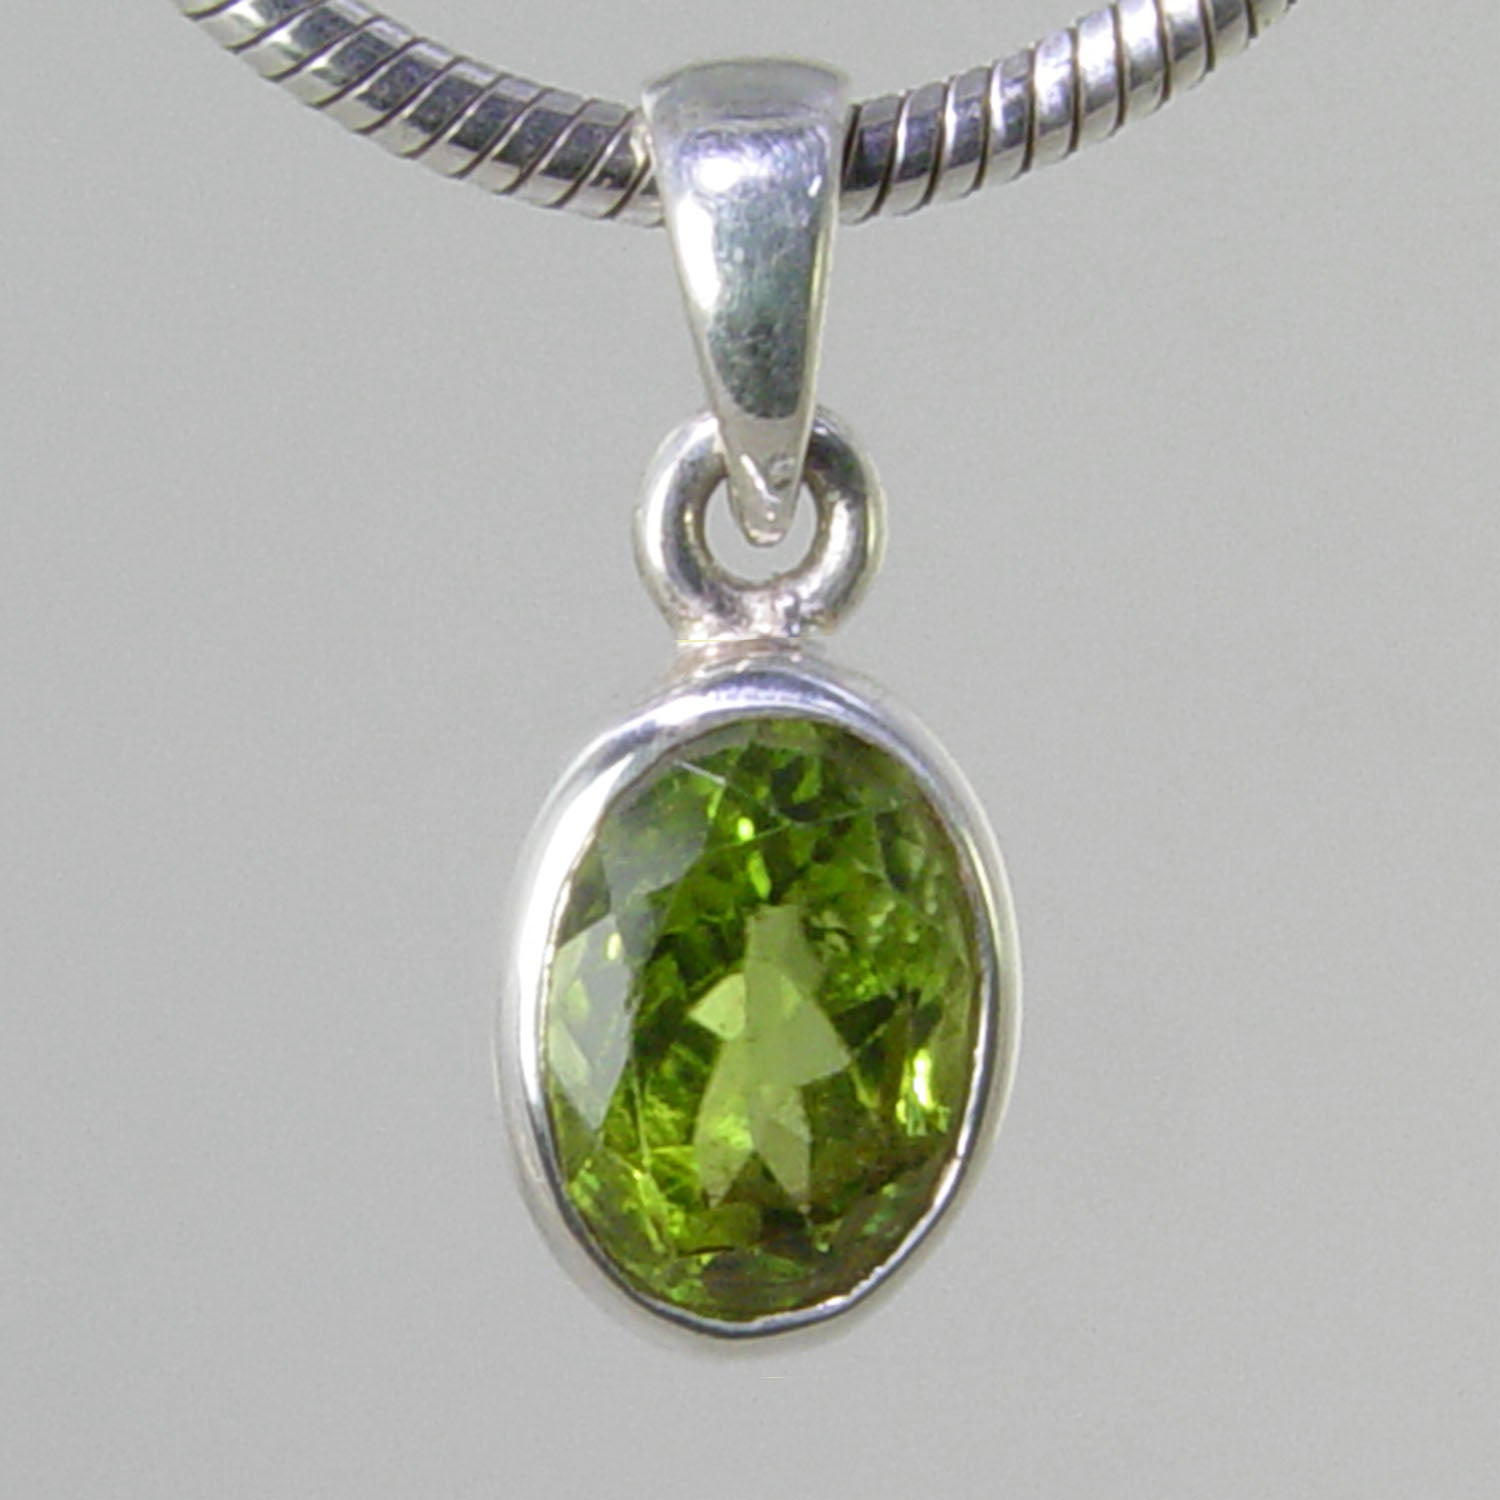 Peridot 2.8 ct Faceted Oval Bezel Set Sterling Silver Pendant